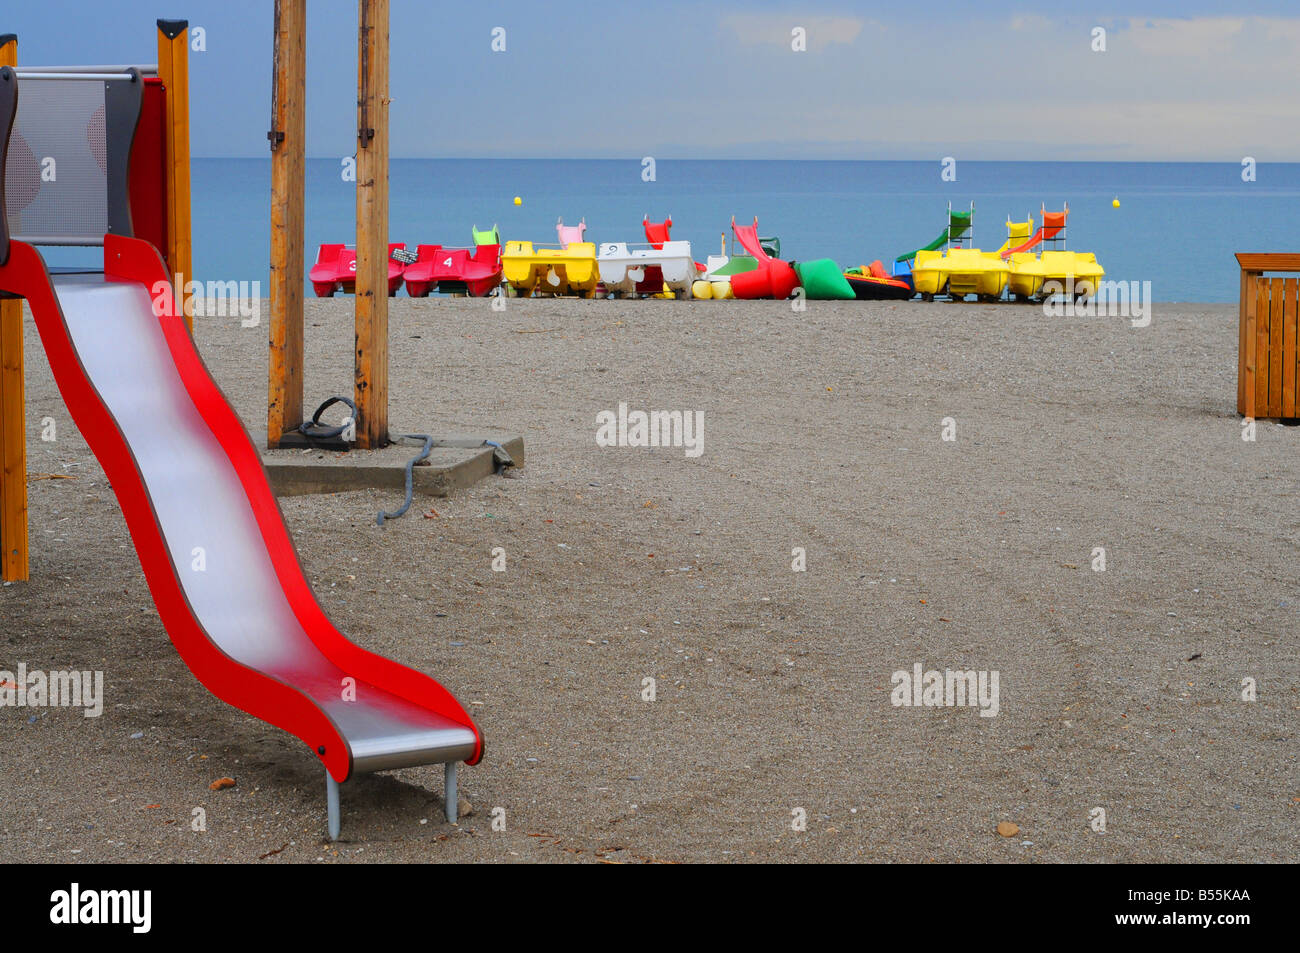 A children's slide on a deserted beach in southern Spain, out of season, with pedalo pedal boats in the background. - Stock Image